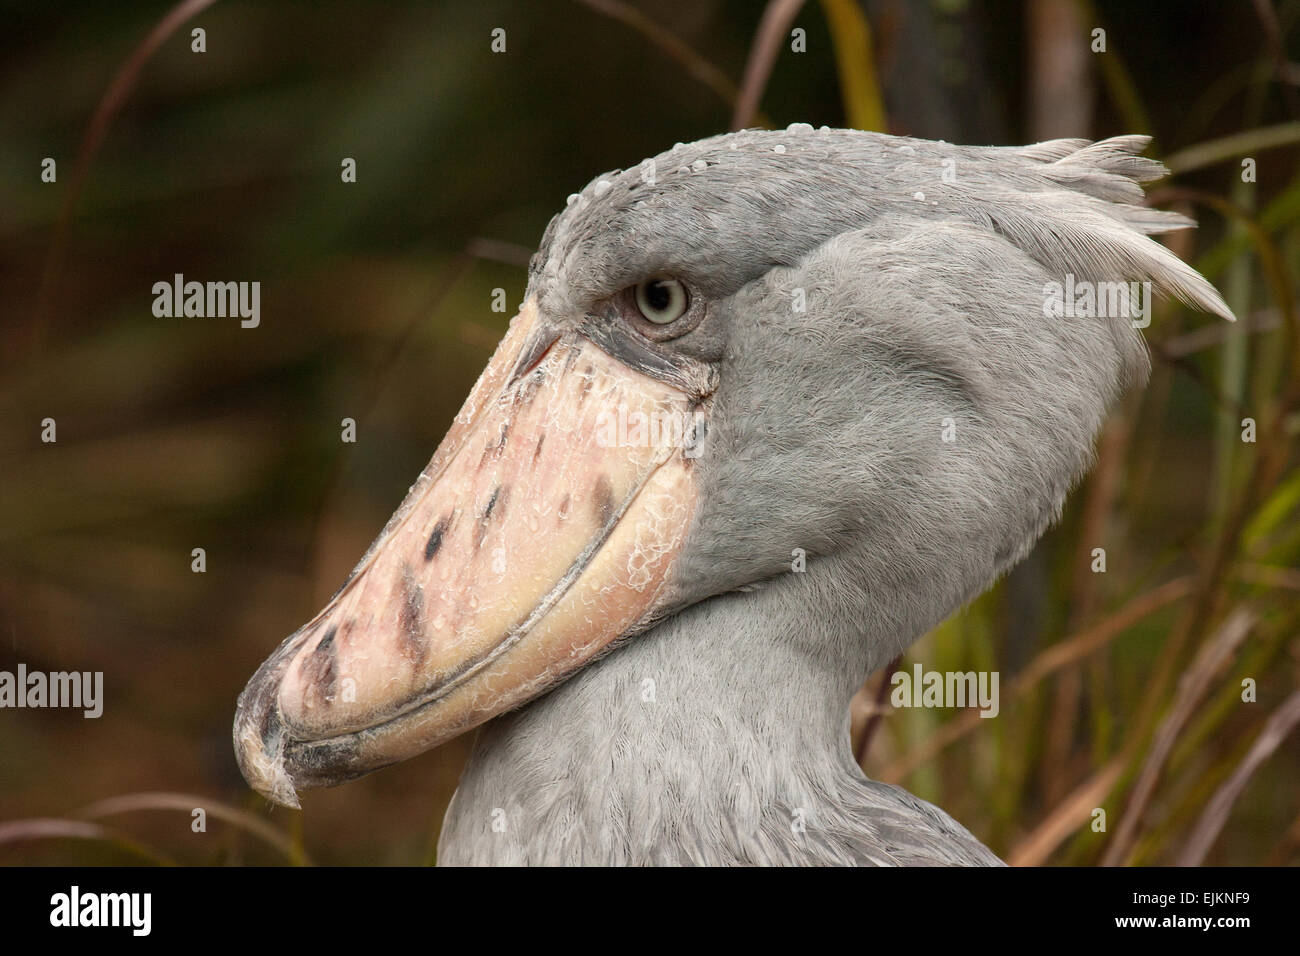 shoebill balaeniceps rex huge bird stock photos shoebill